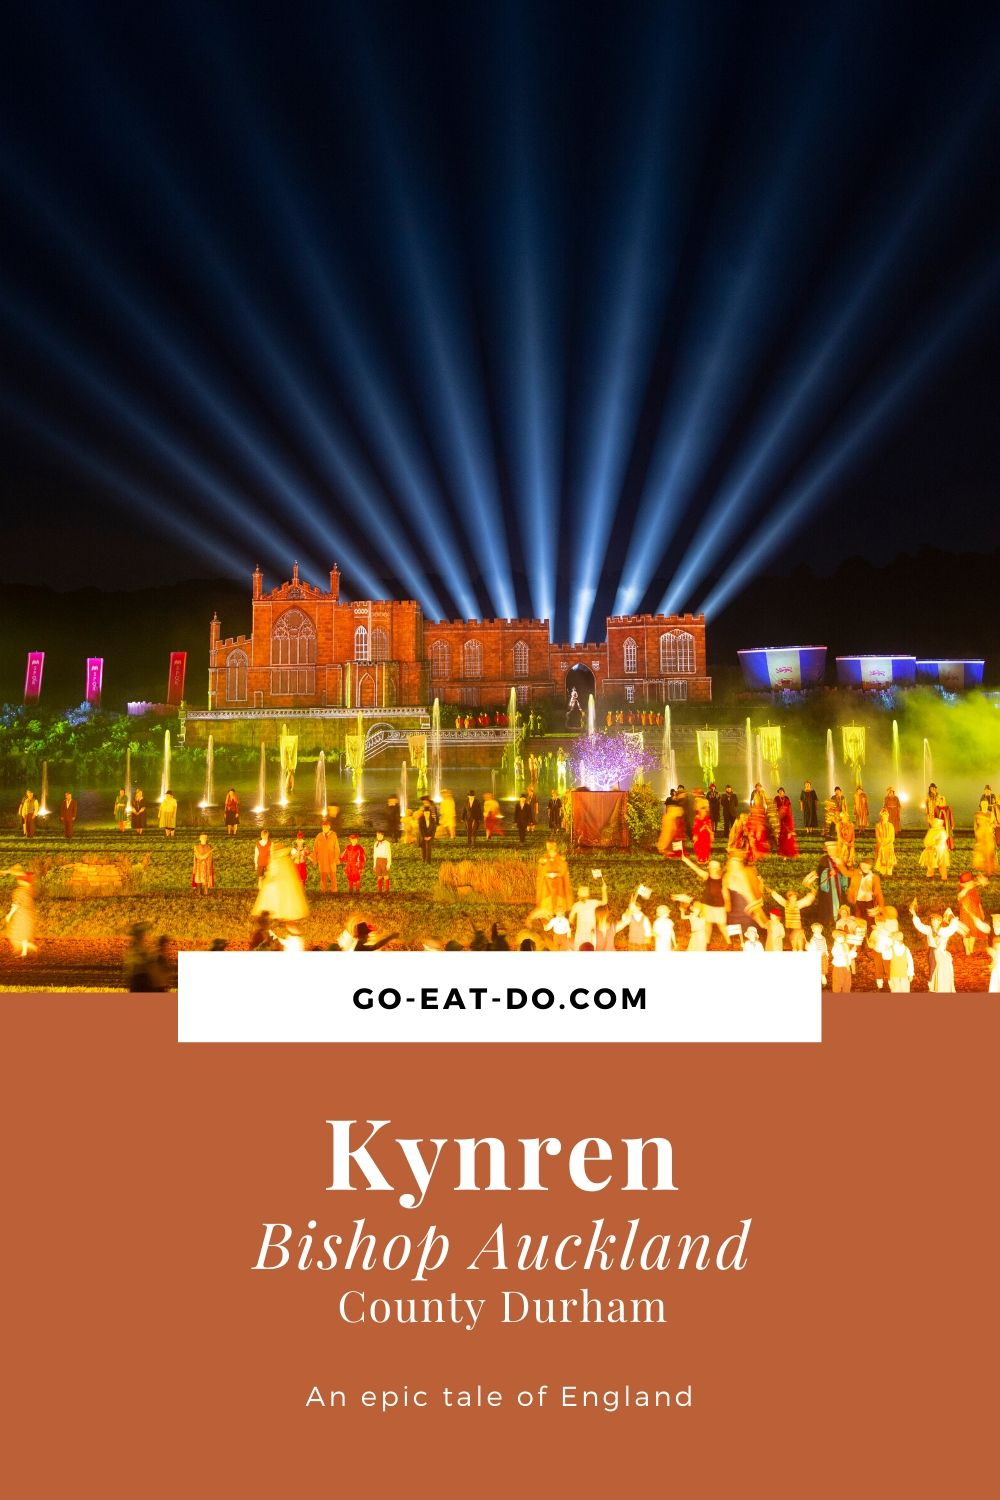 Pinterest pin for Go Eat Do's blog post about Kynren, the outdoor spectacle billed as an epic tale of England, at Bishop Auckland in County Durham.